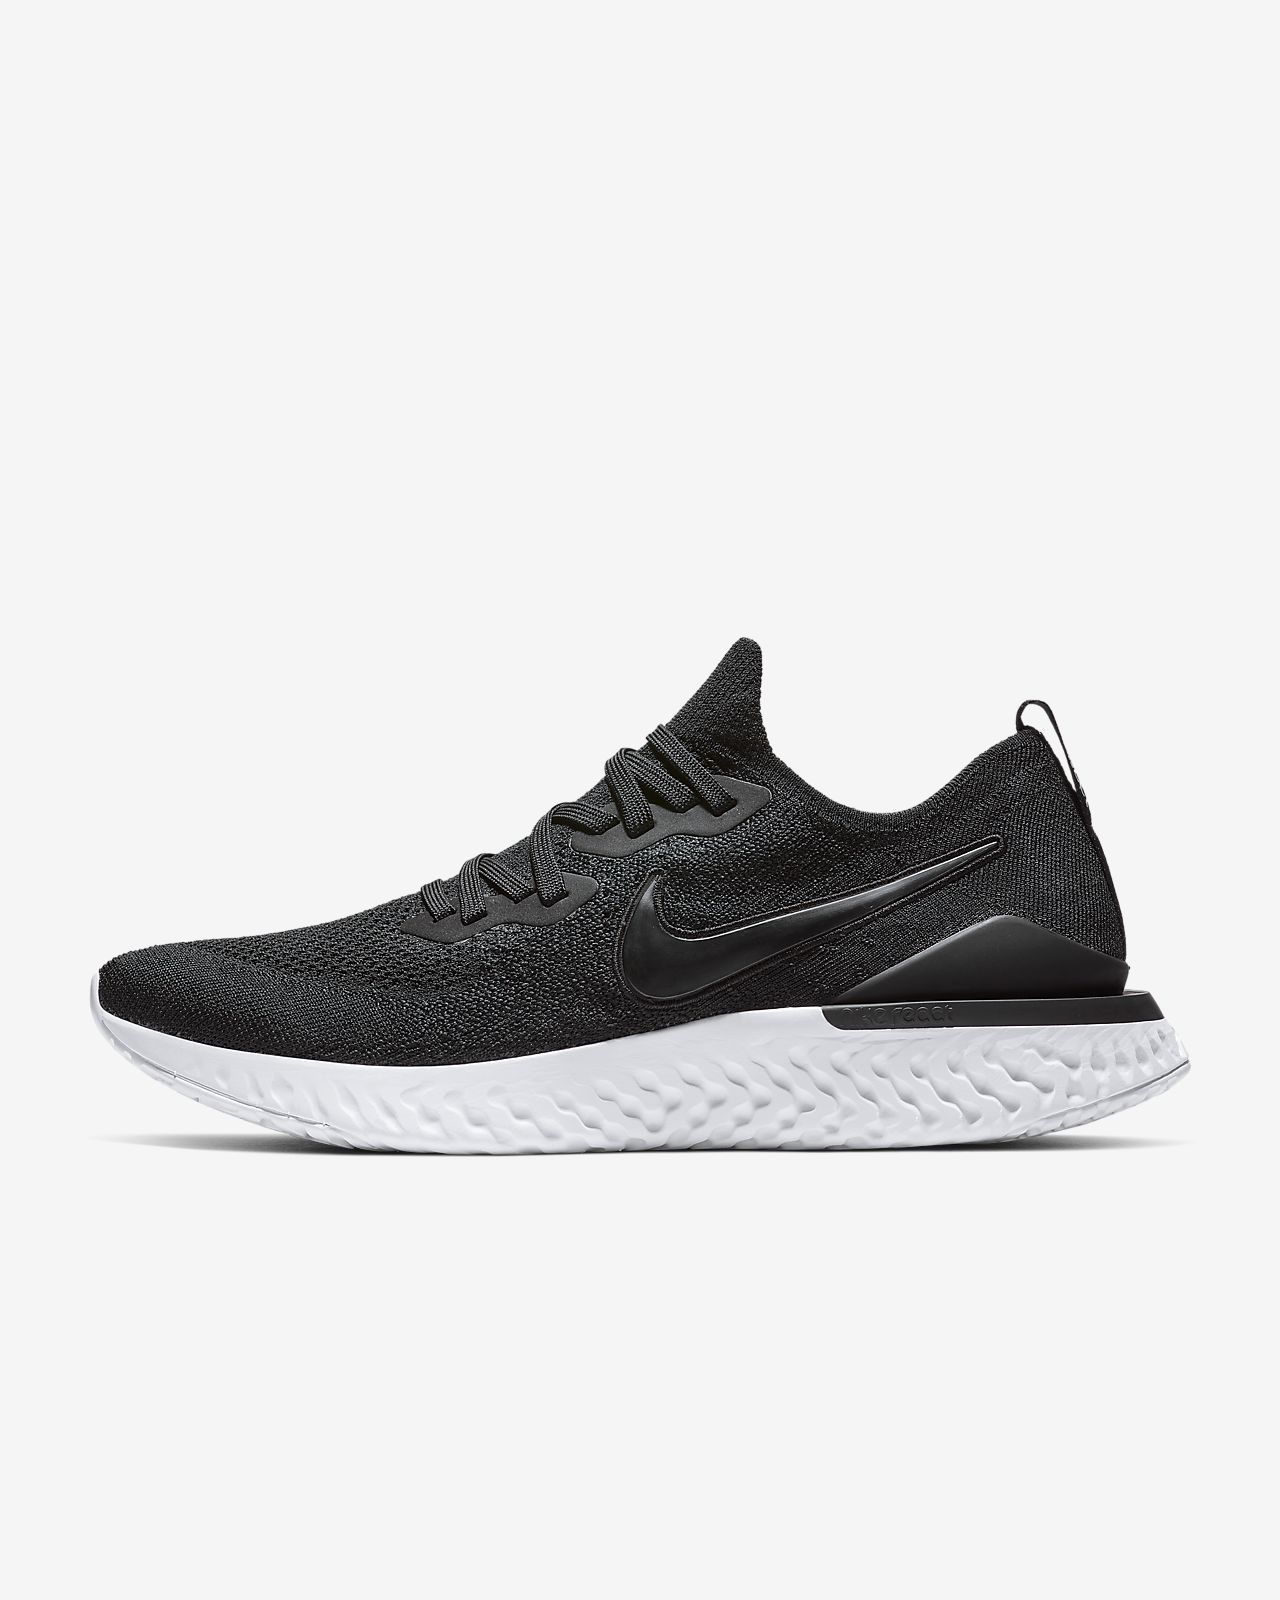 4e6b0ef37ba46 Nike Epic React Flyknit 2 Men s Running Shoe. Nike.com ZA